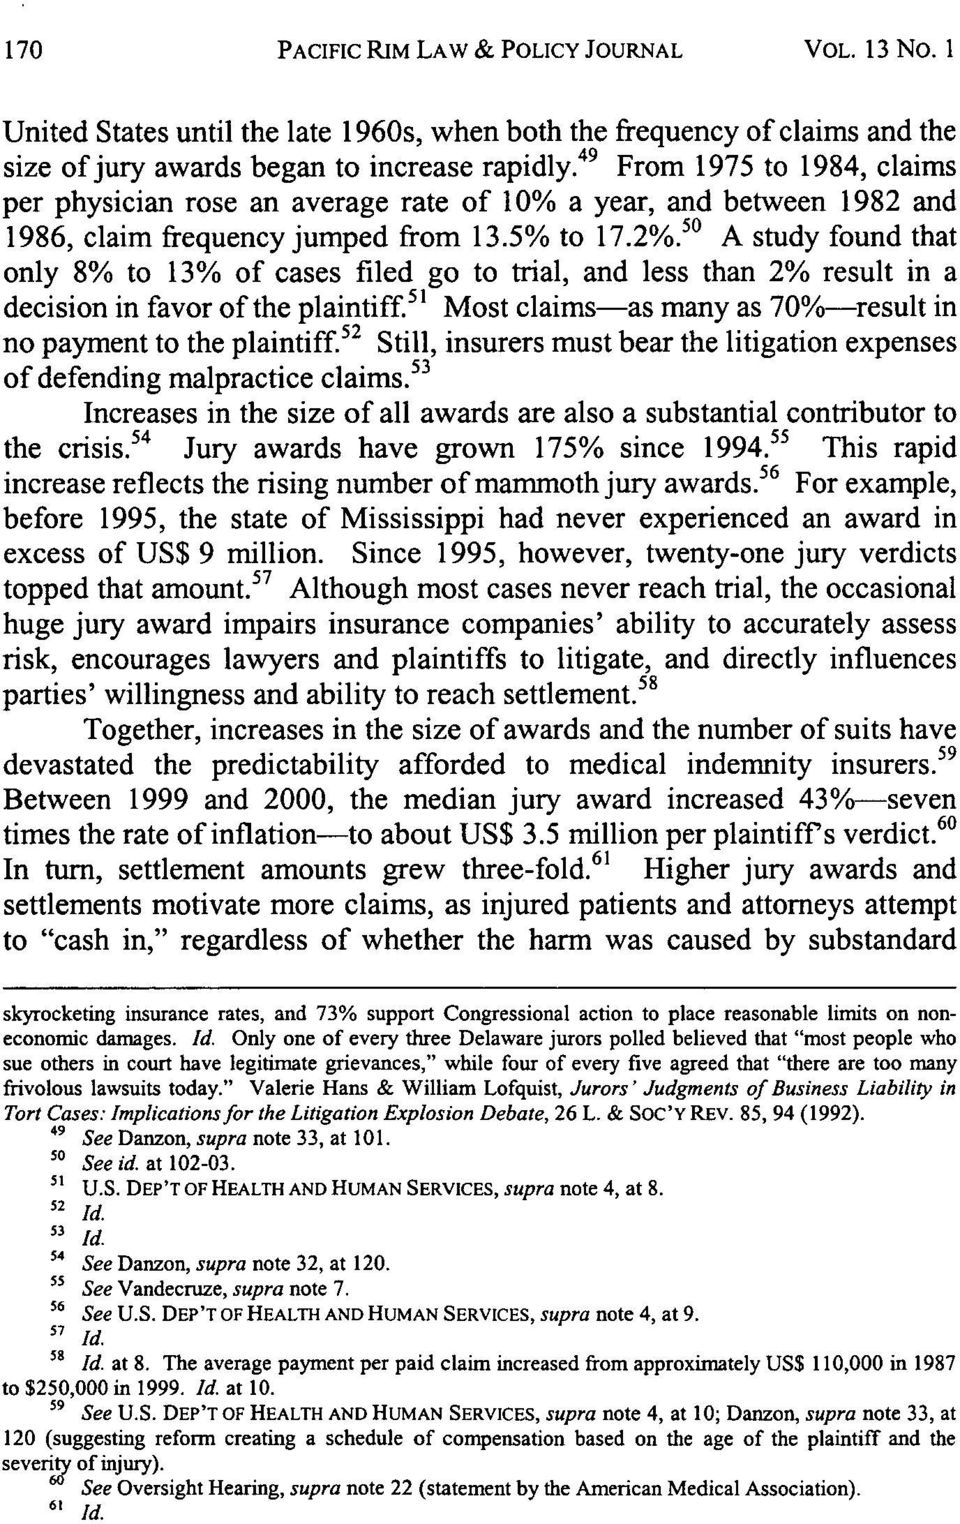 50 A study found that only 8% to 13% of cases filed go to trial, and less than 2% result in a decision in favor of the plaintiff. 5 ' Most claims-as many as 70%-result in no payment to the plaintiff.